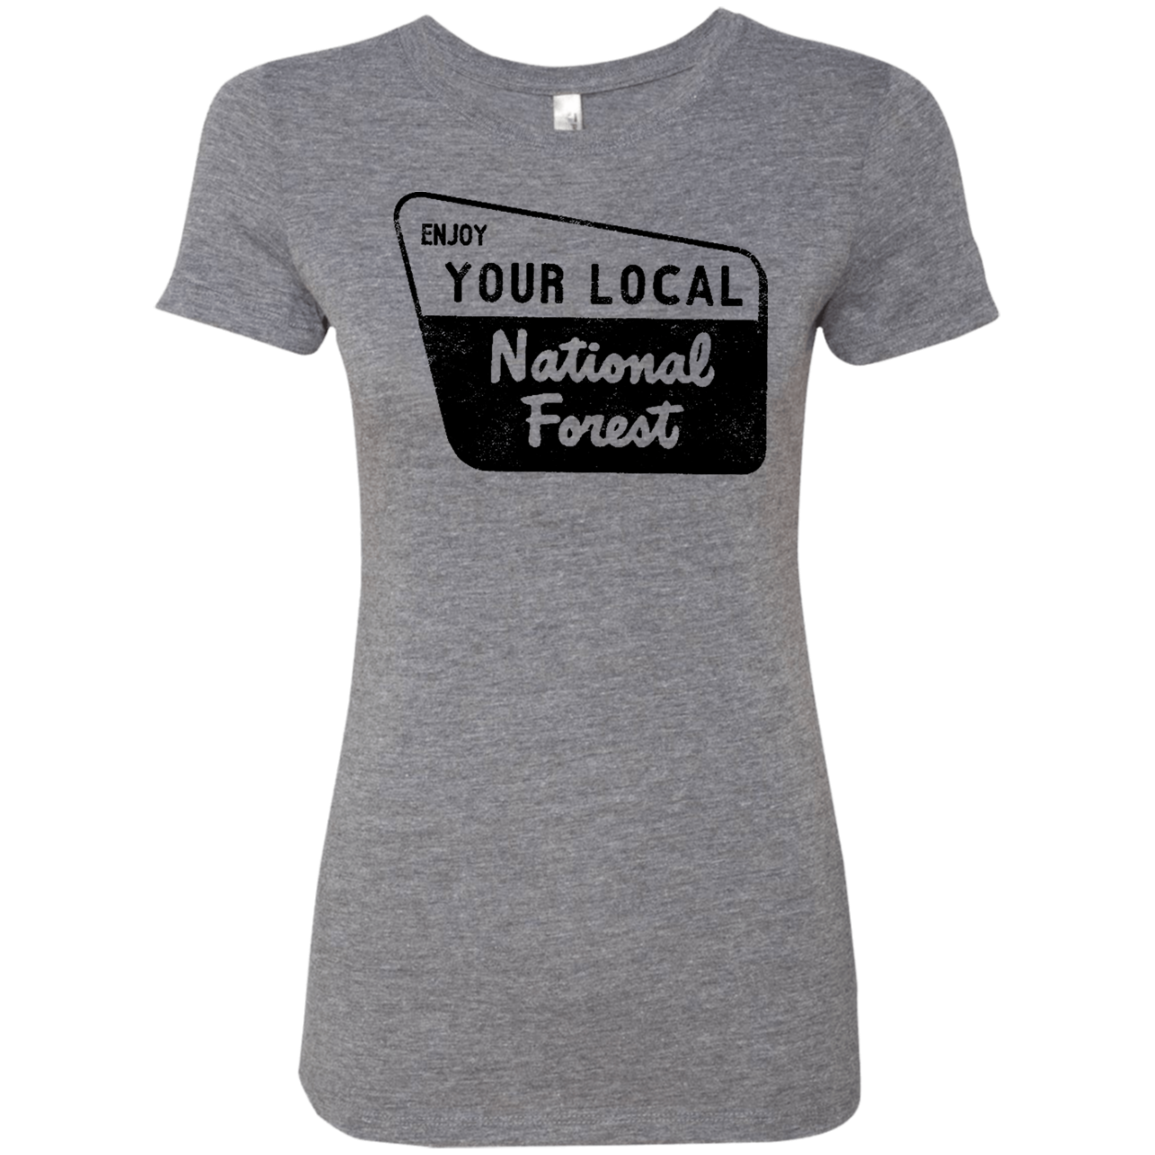 Enjoy Your Local Natonal Forest Women's Classic Tee